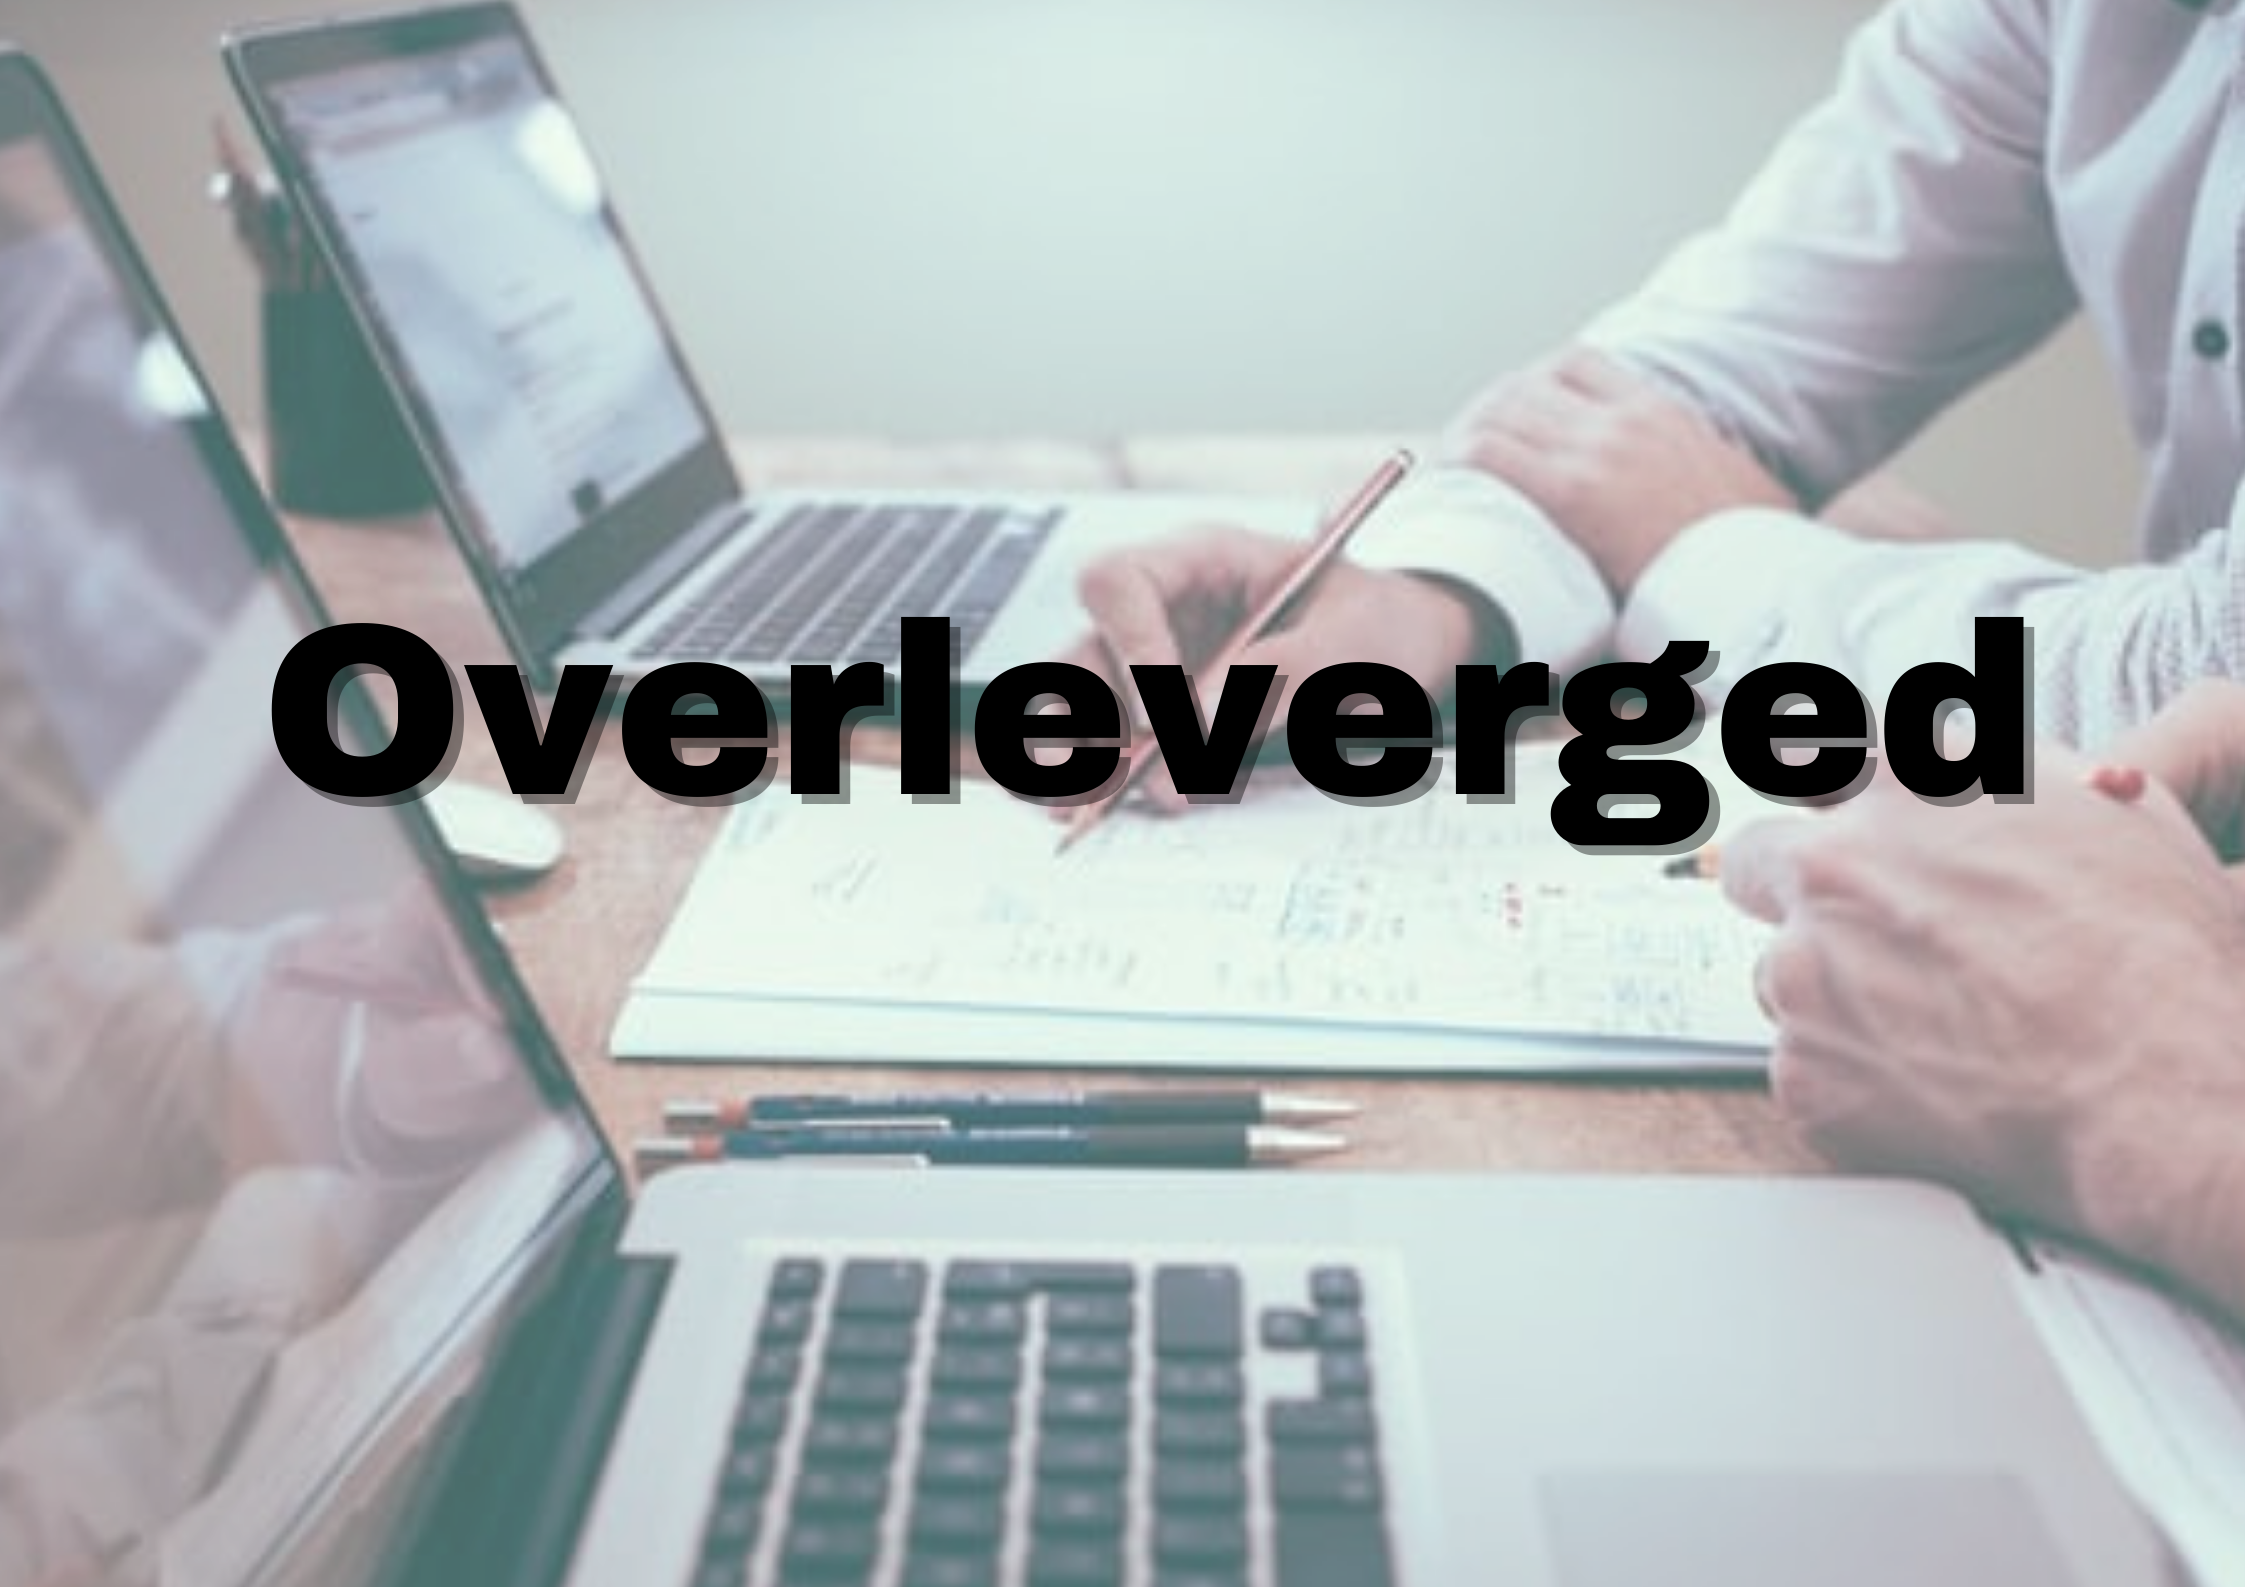 Overleveraged and its effect on finance